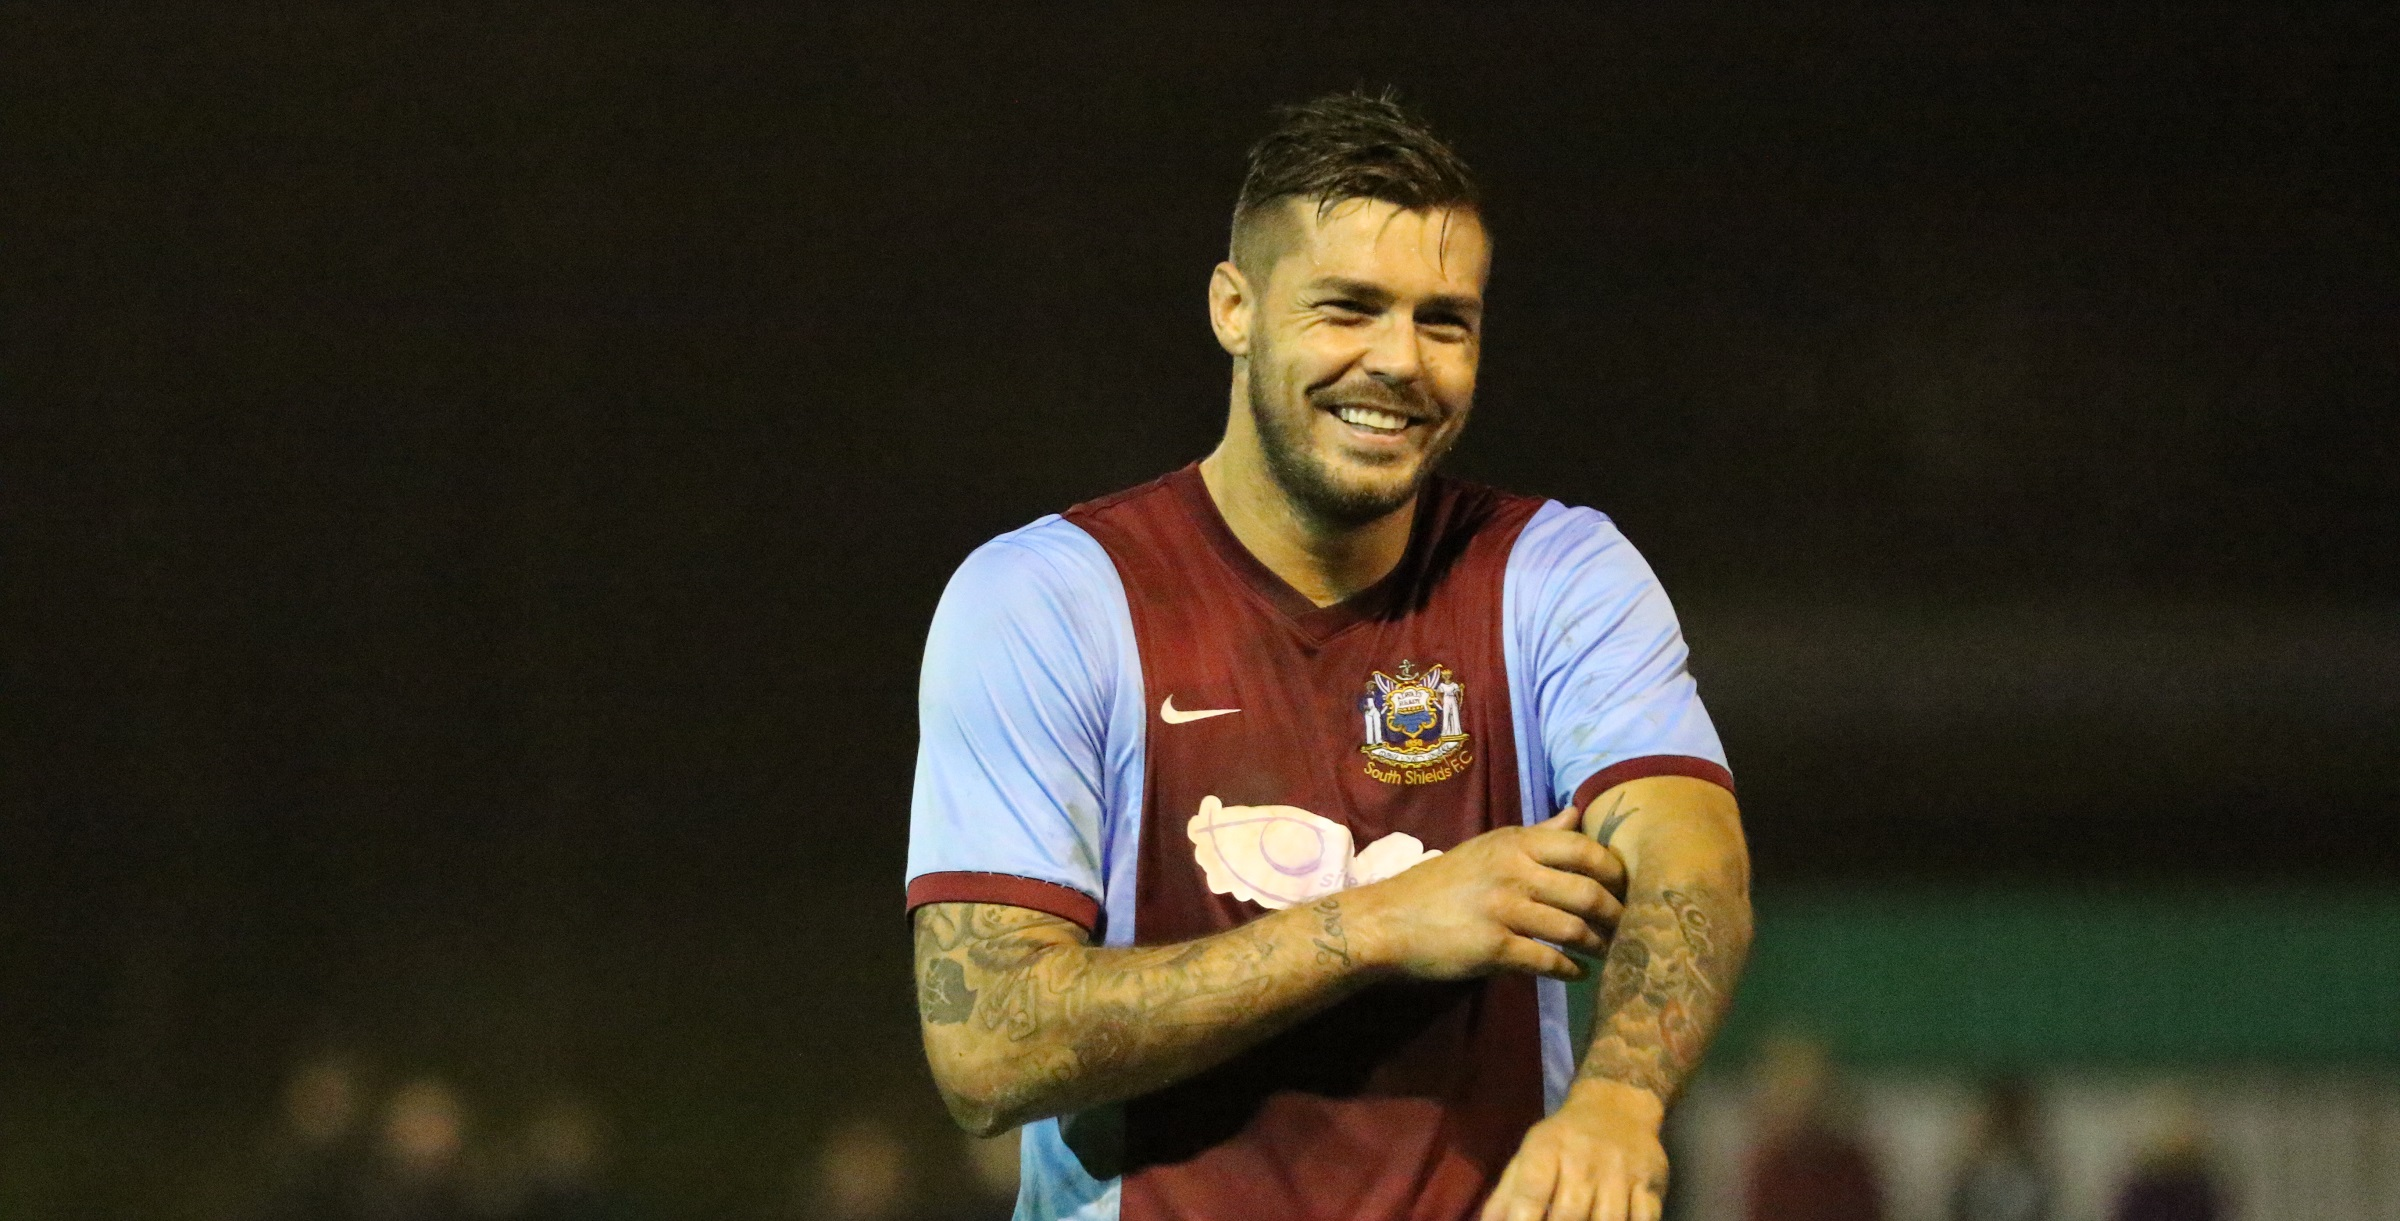 VIDEO: Daryll Hall – this is a great club to be part of